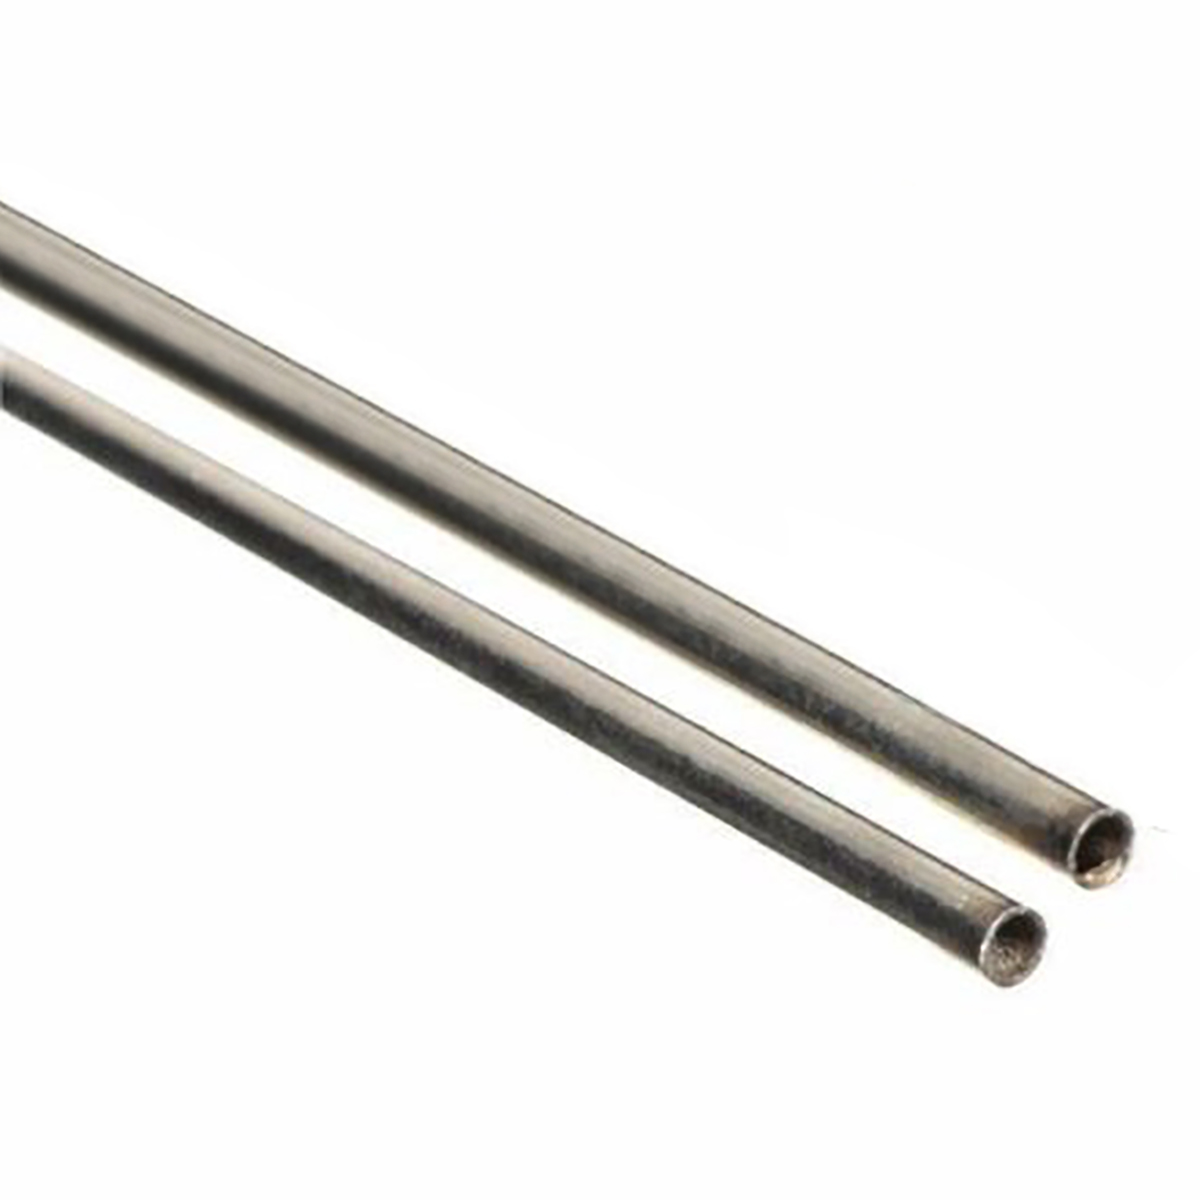 2pcs Silver 304 Stainless Steel Tube 2mm x 1.6mm x 500mm Capillary Tubes 304 stainless steel capillary tube od 3mm x 1mm id length 250mm excellent rust resistance can be use to chemical industry etc